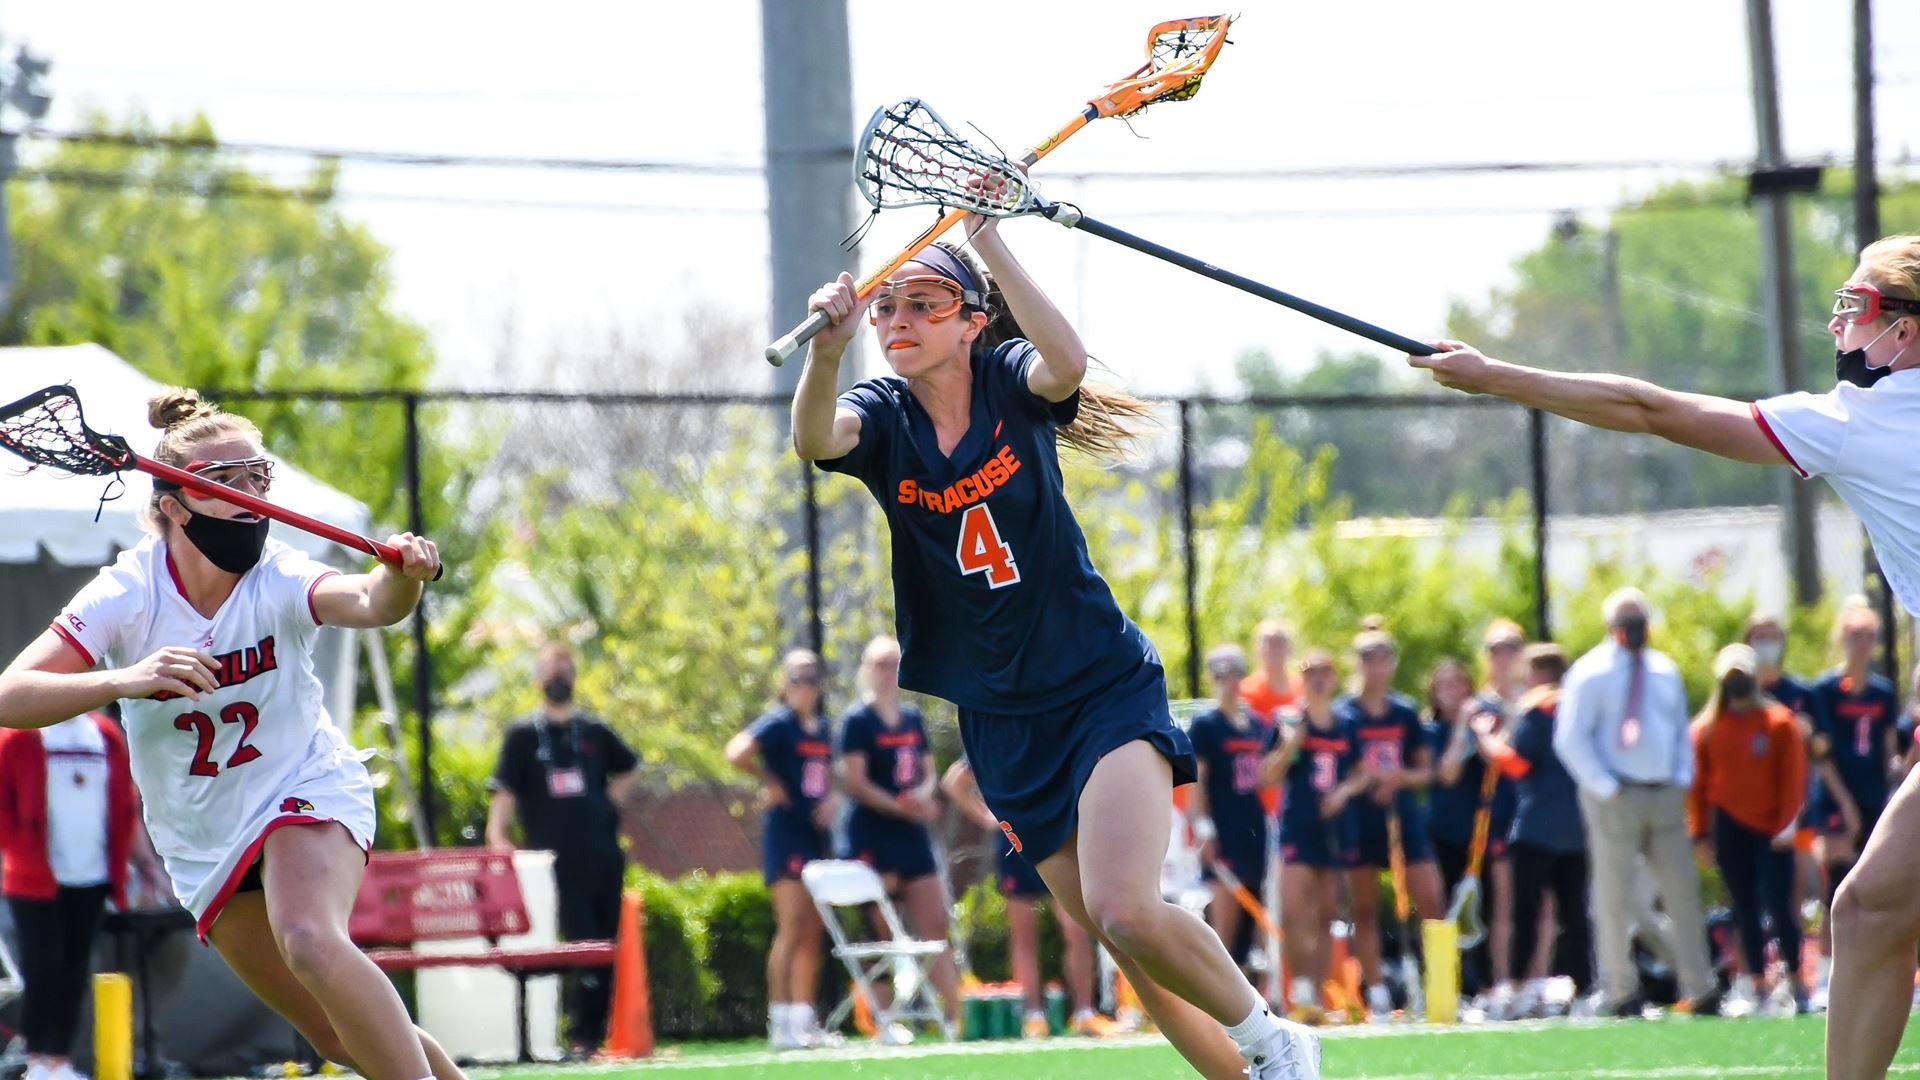 Syracuse women's lacrosse completes sweep of Louisville (full coverage)